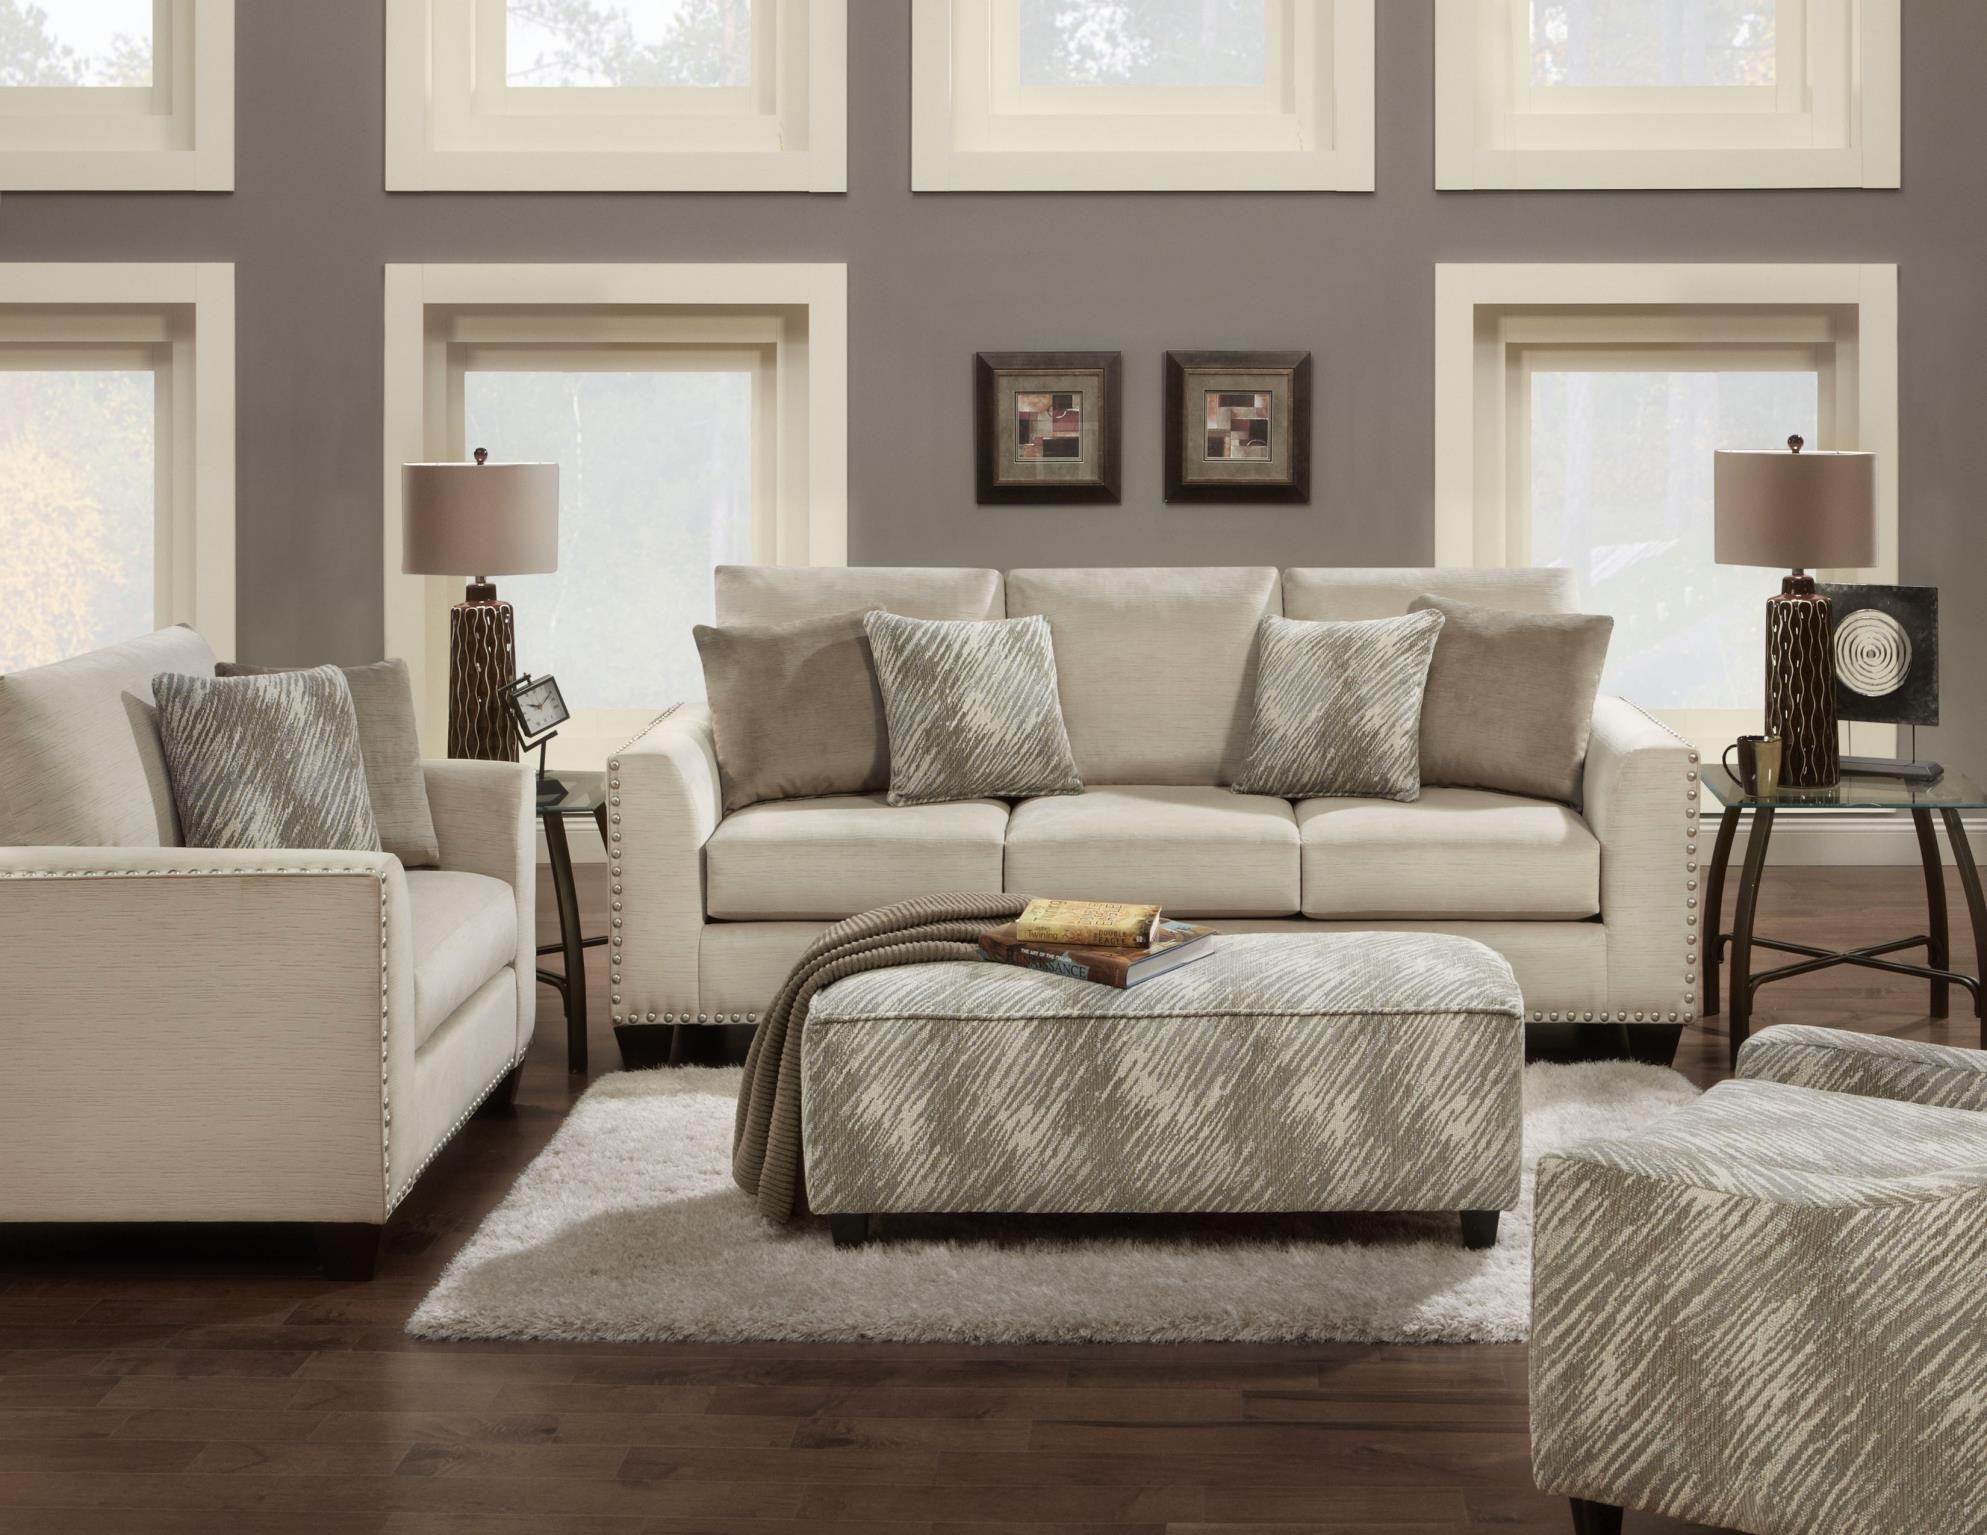 Merveilleux Fusion Living Room Chair And A 1/2 1462Empire Stone At Priba Furniture And  Interiors